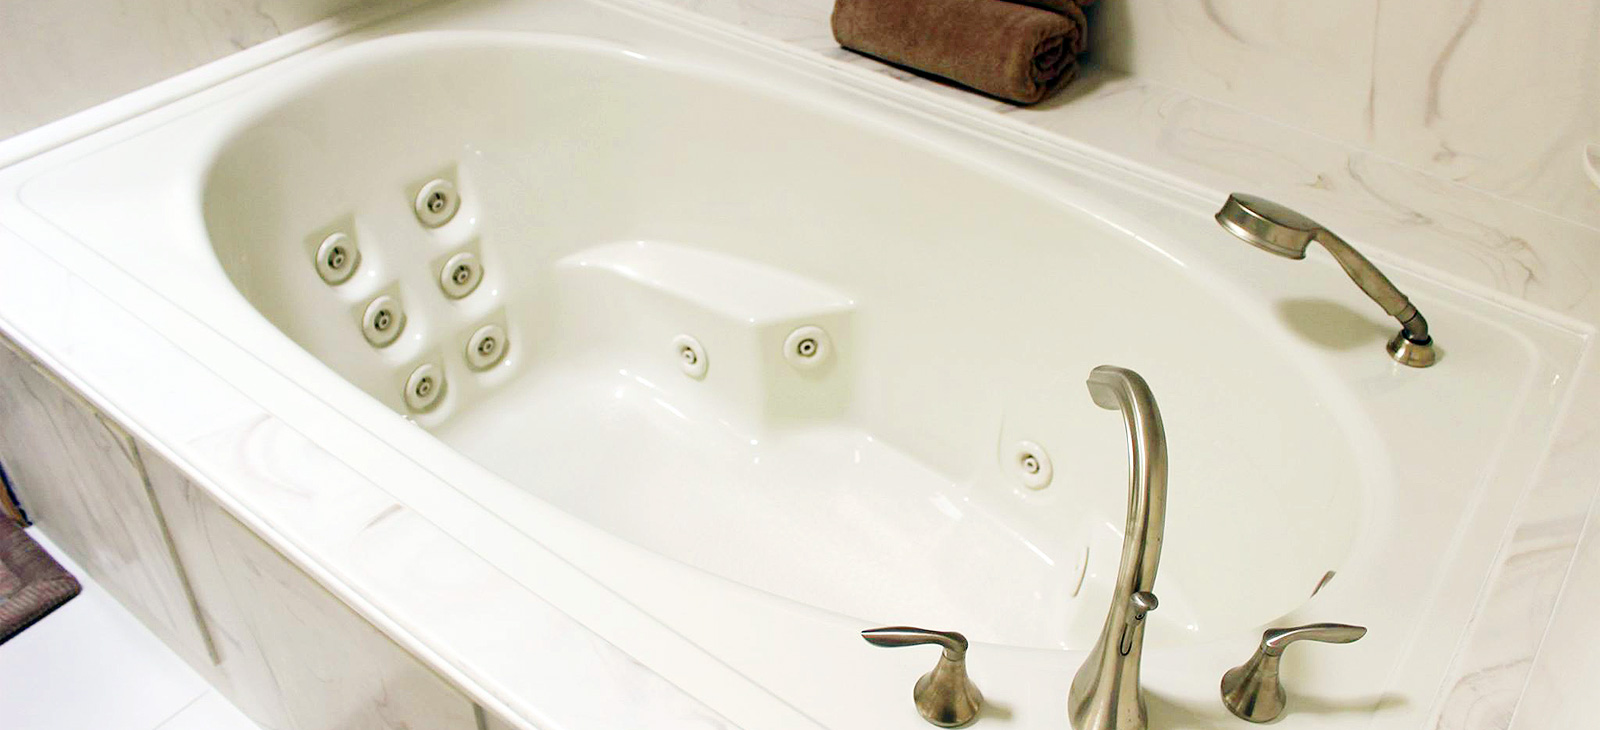 Whirlpool Bathtubs and Walk-in Bath Systems